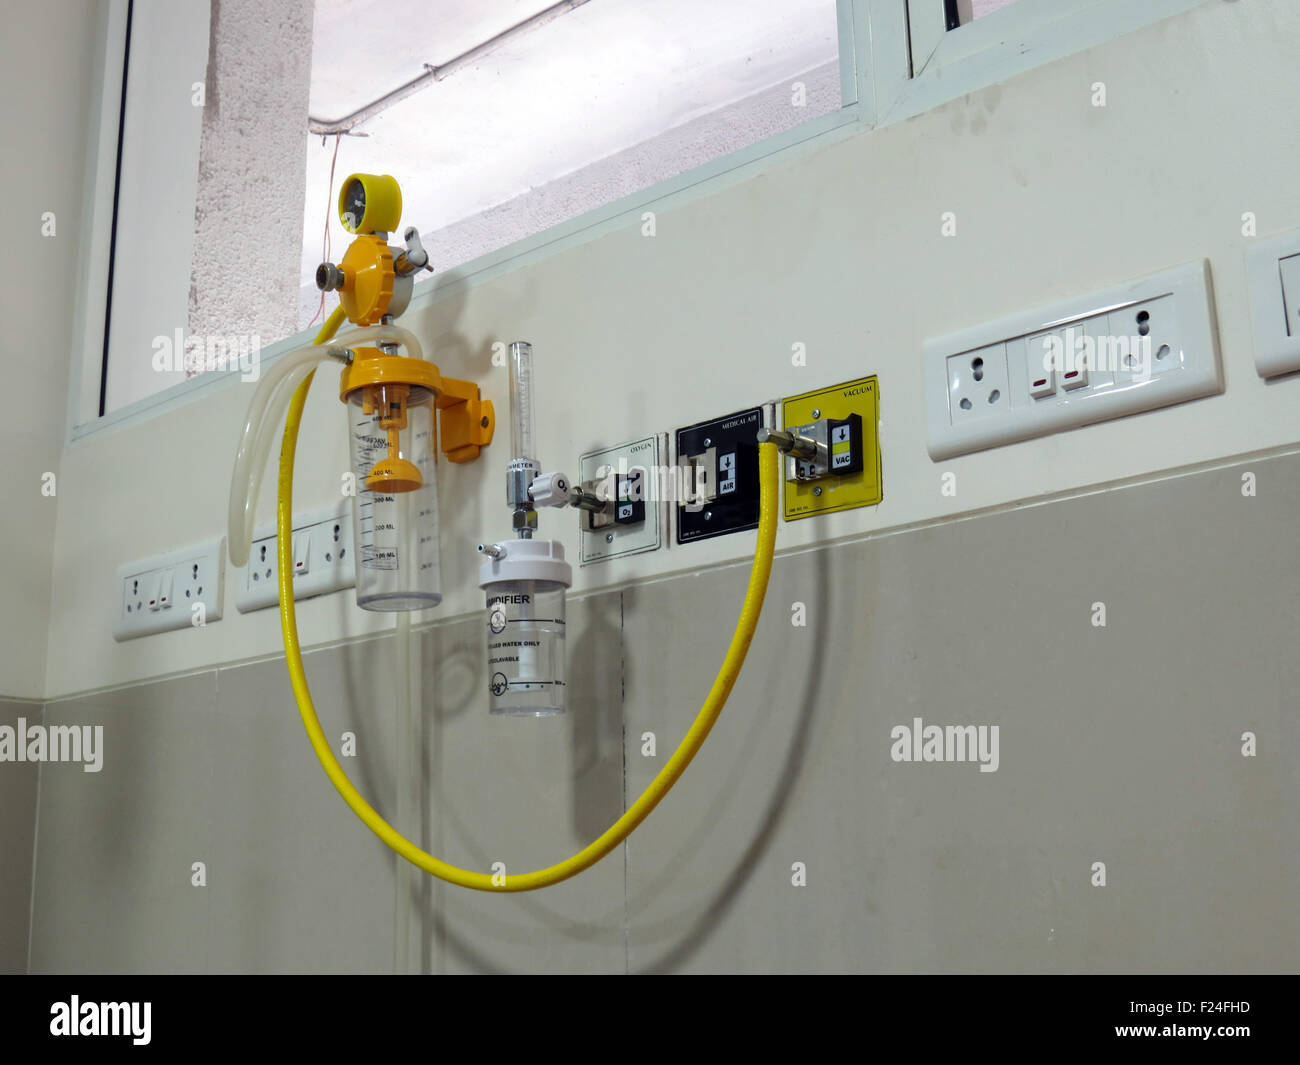 An emergency equipment setup of oxygen and other components at a hospital. - Stock Image